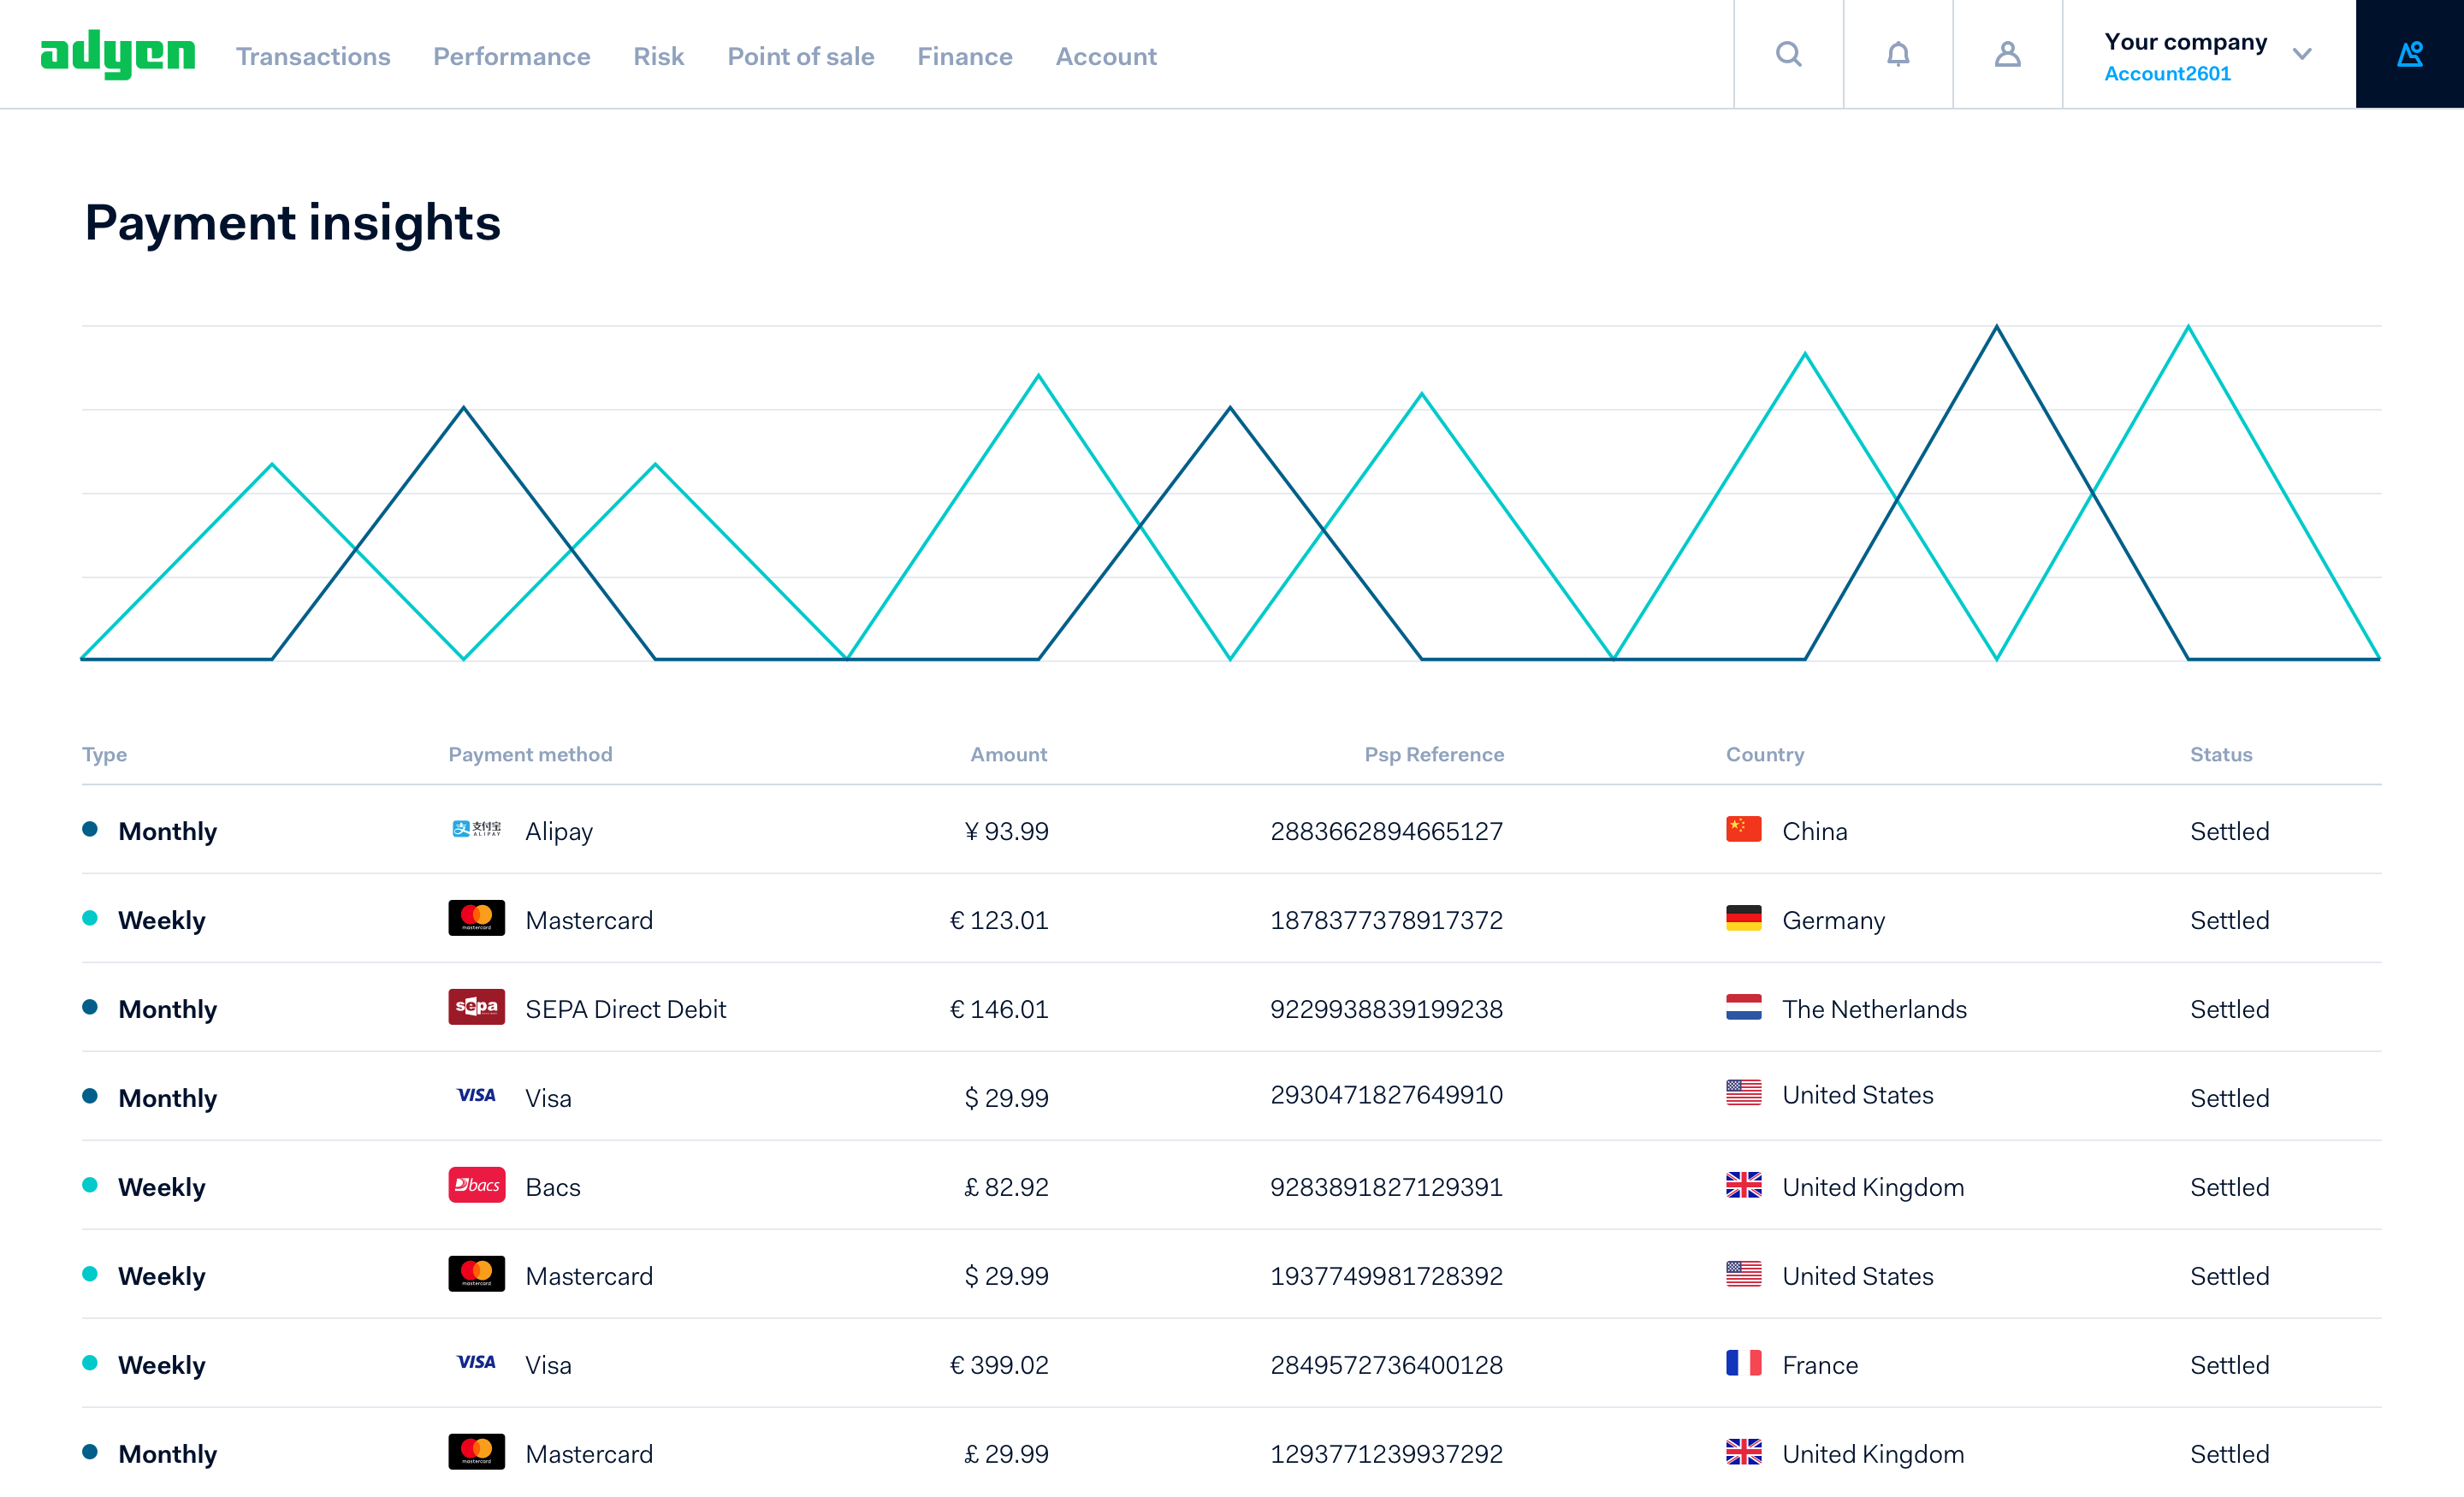 Dashboard showing subscription payments